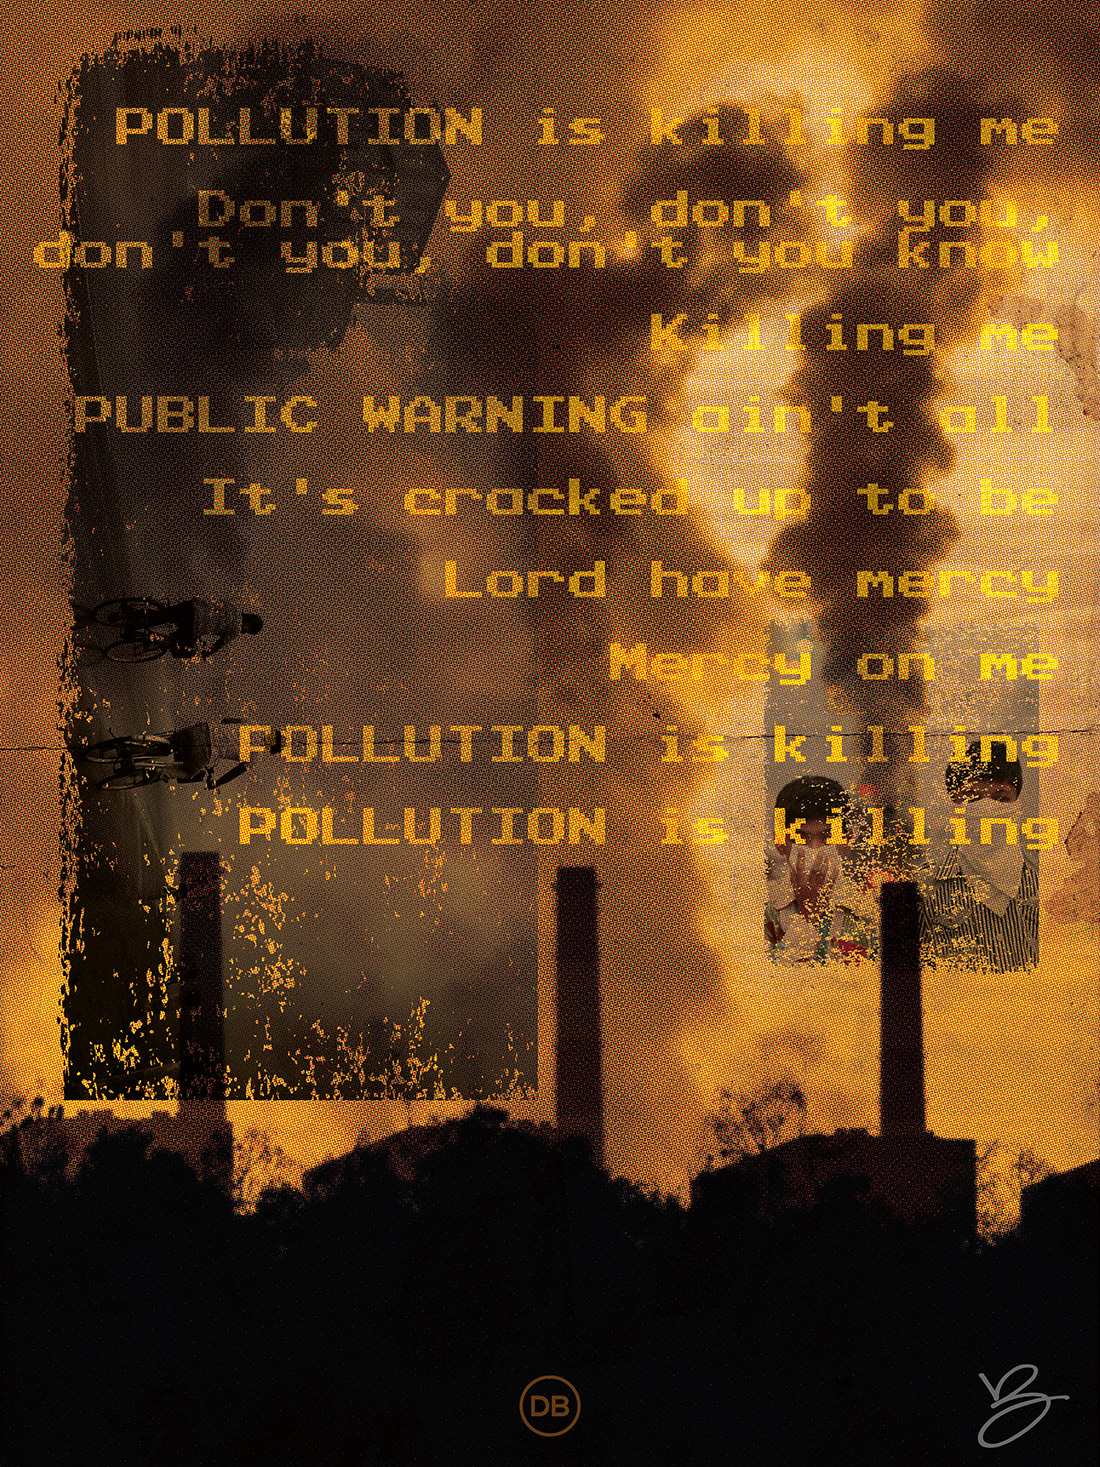 David Bernie Indian Country 52 44 Pollution is Killing Me